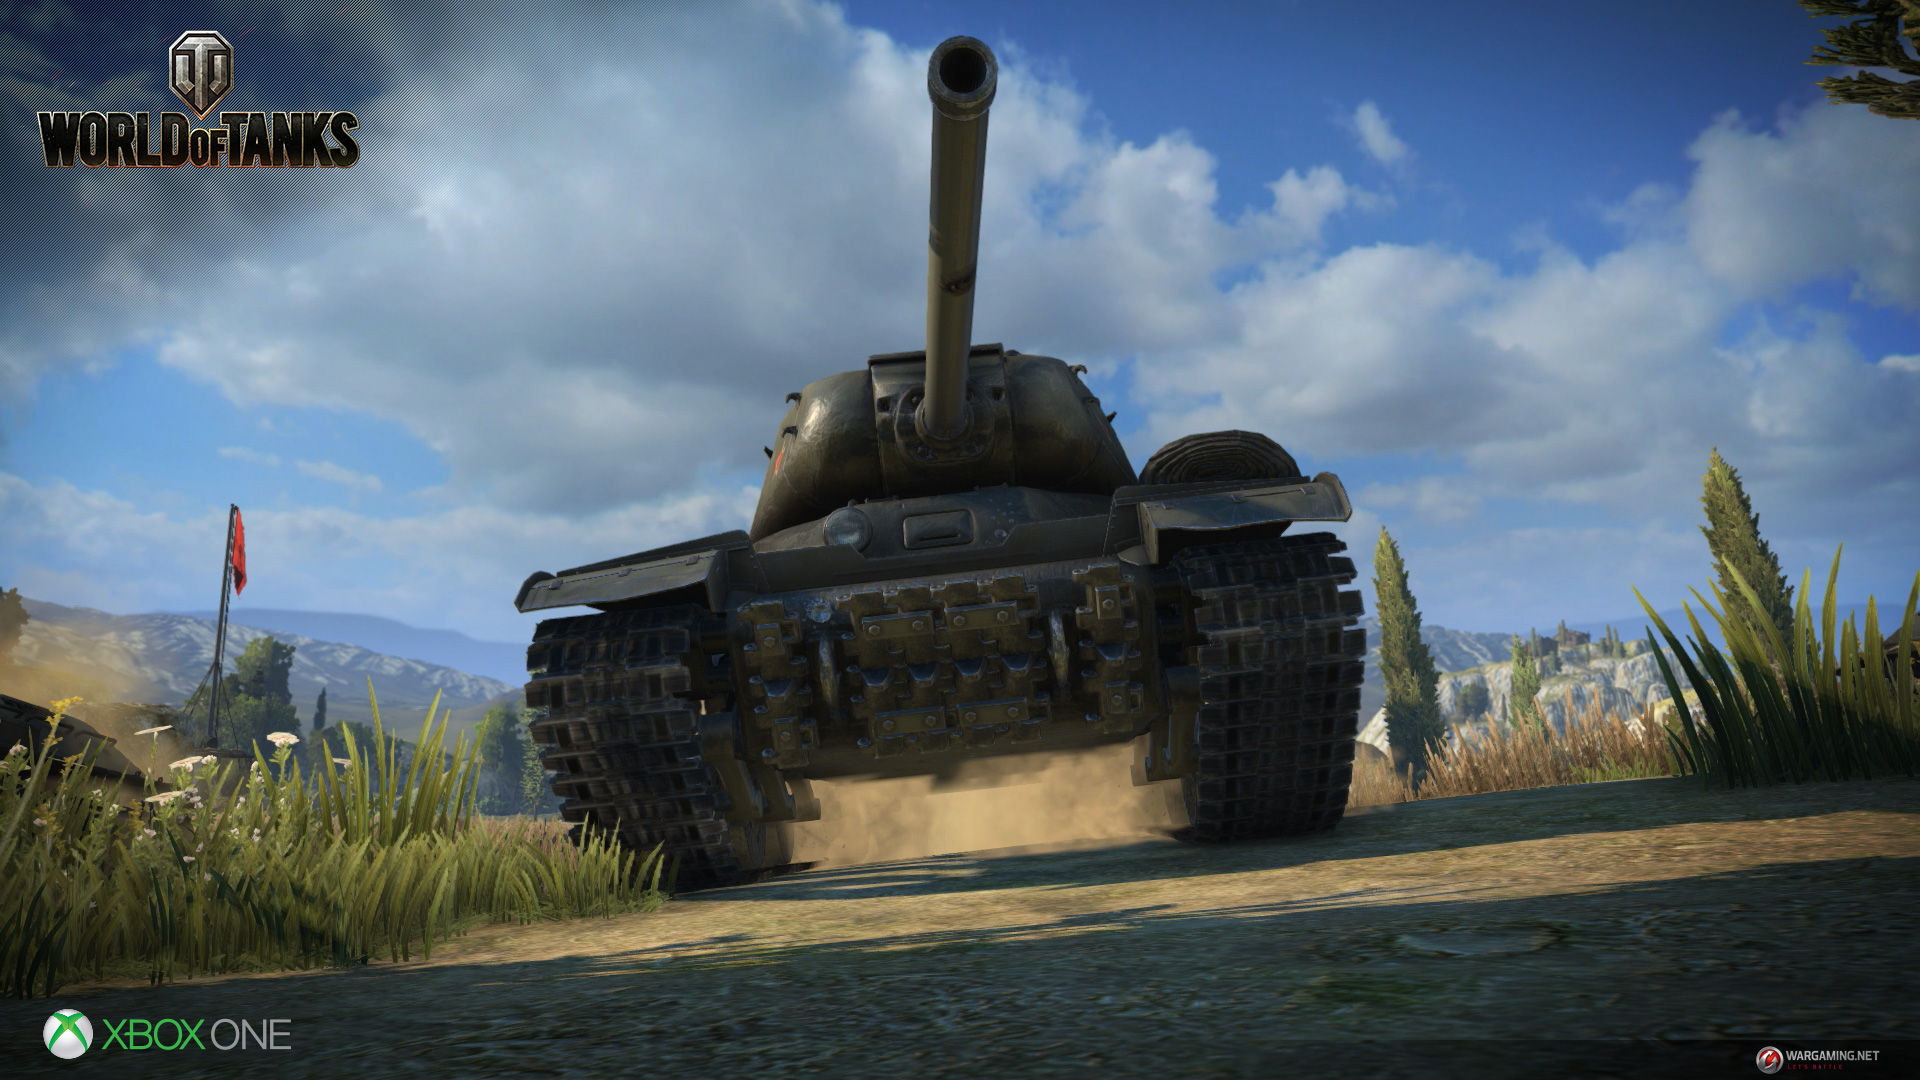 World-of-Tanks-Xbox-One-Release-Date.jpg